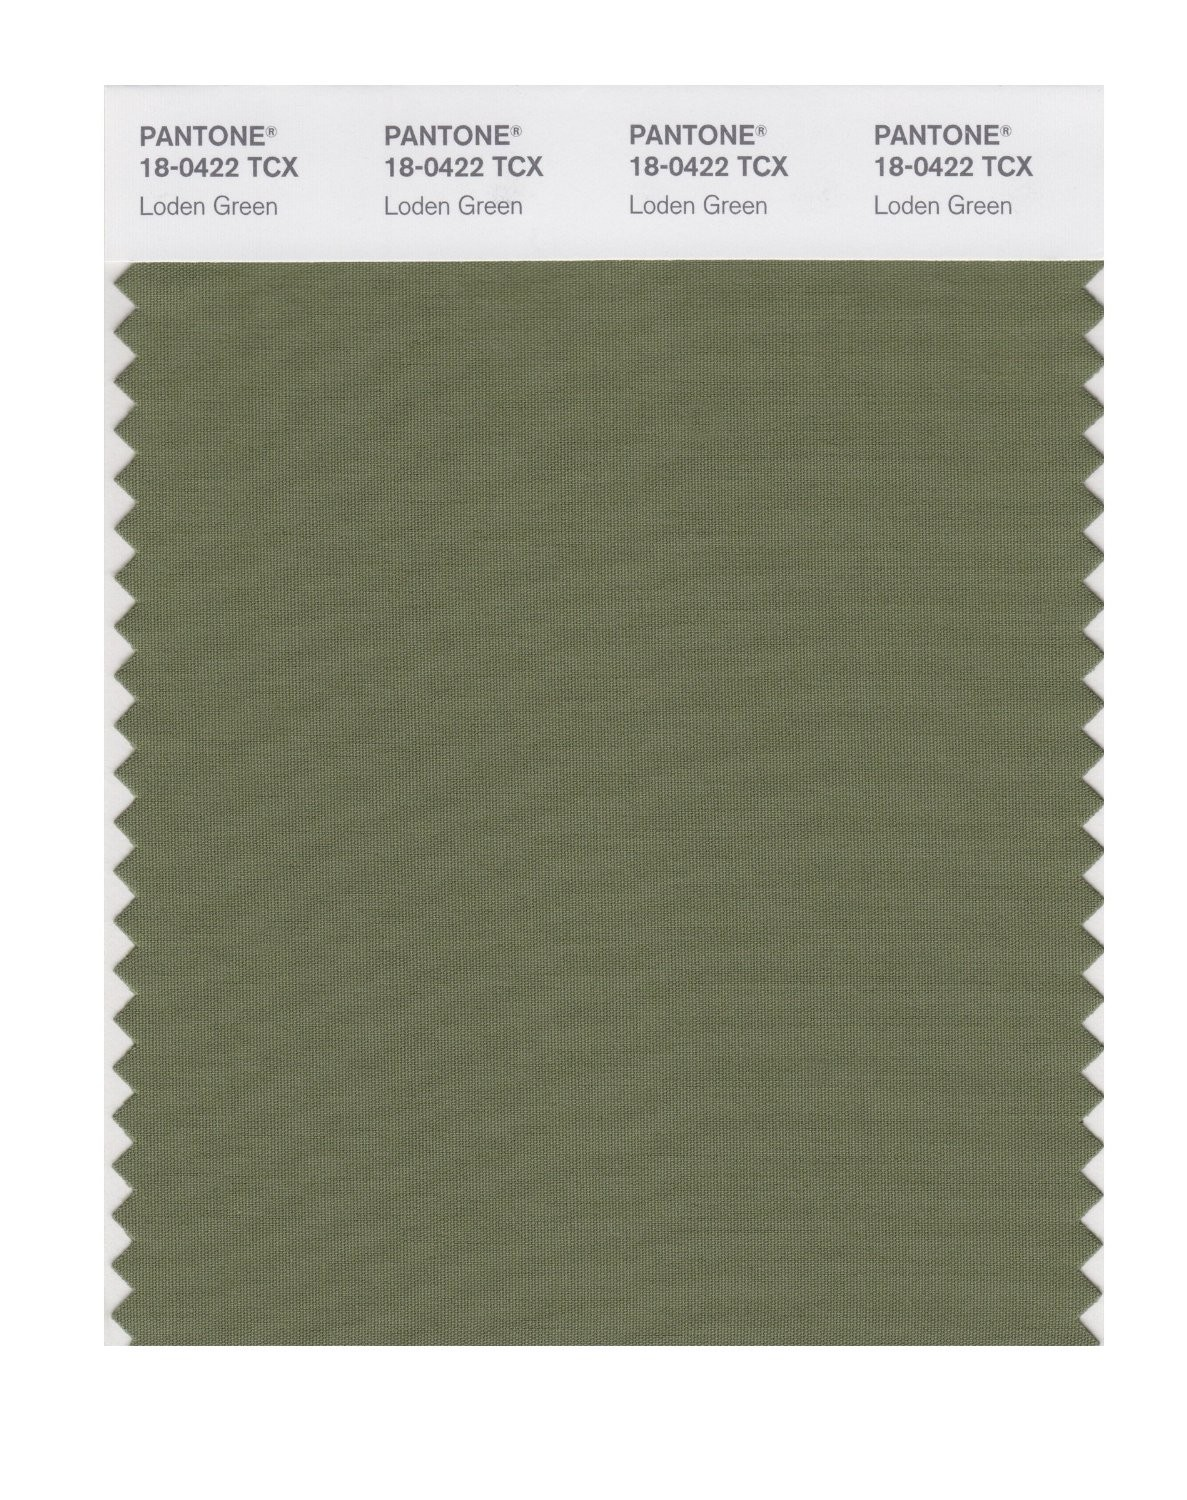 Pantone 18-0422 TCX Swatch Card Loden Green